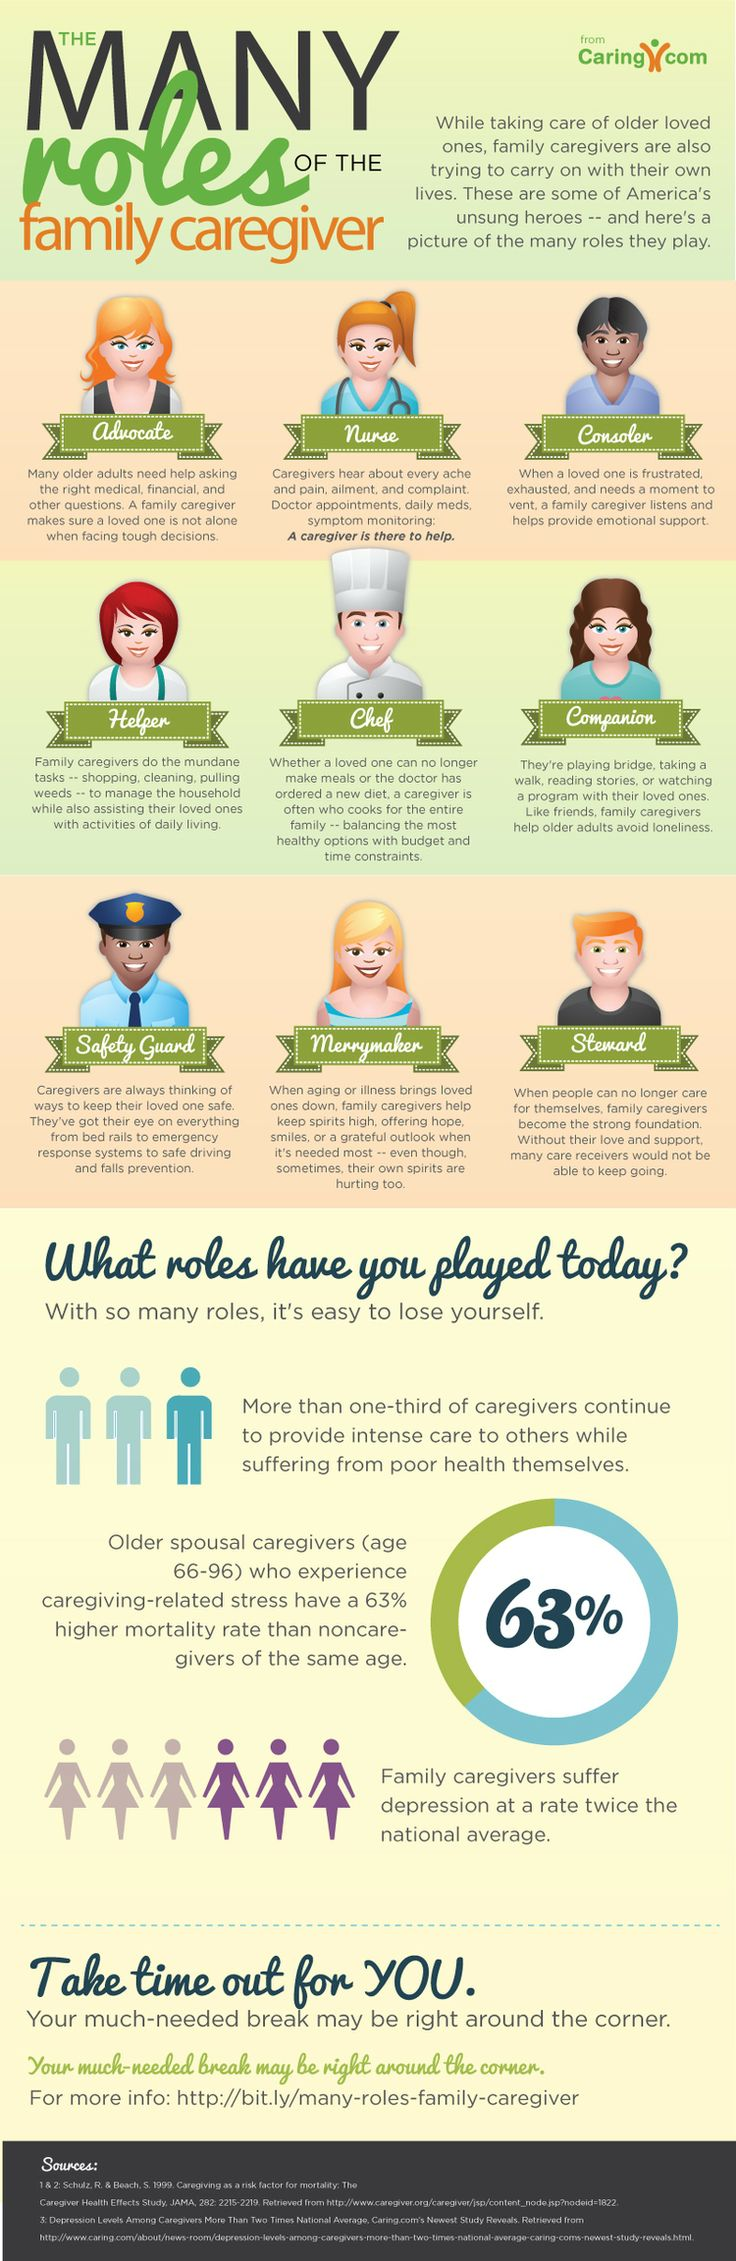 The Many Roles of the Family Caregiver